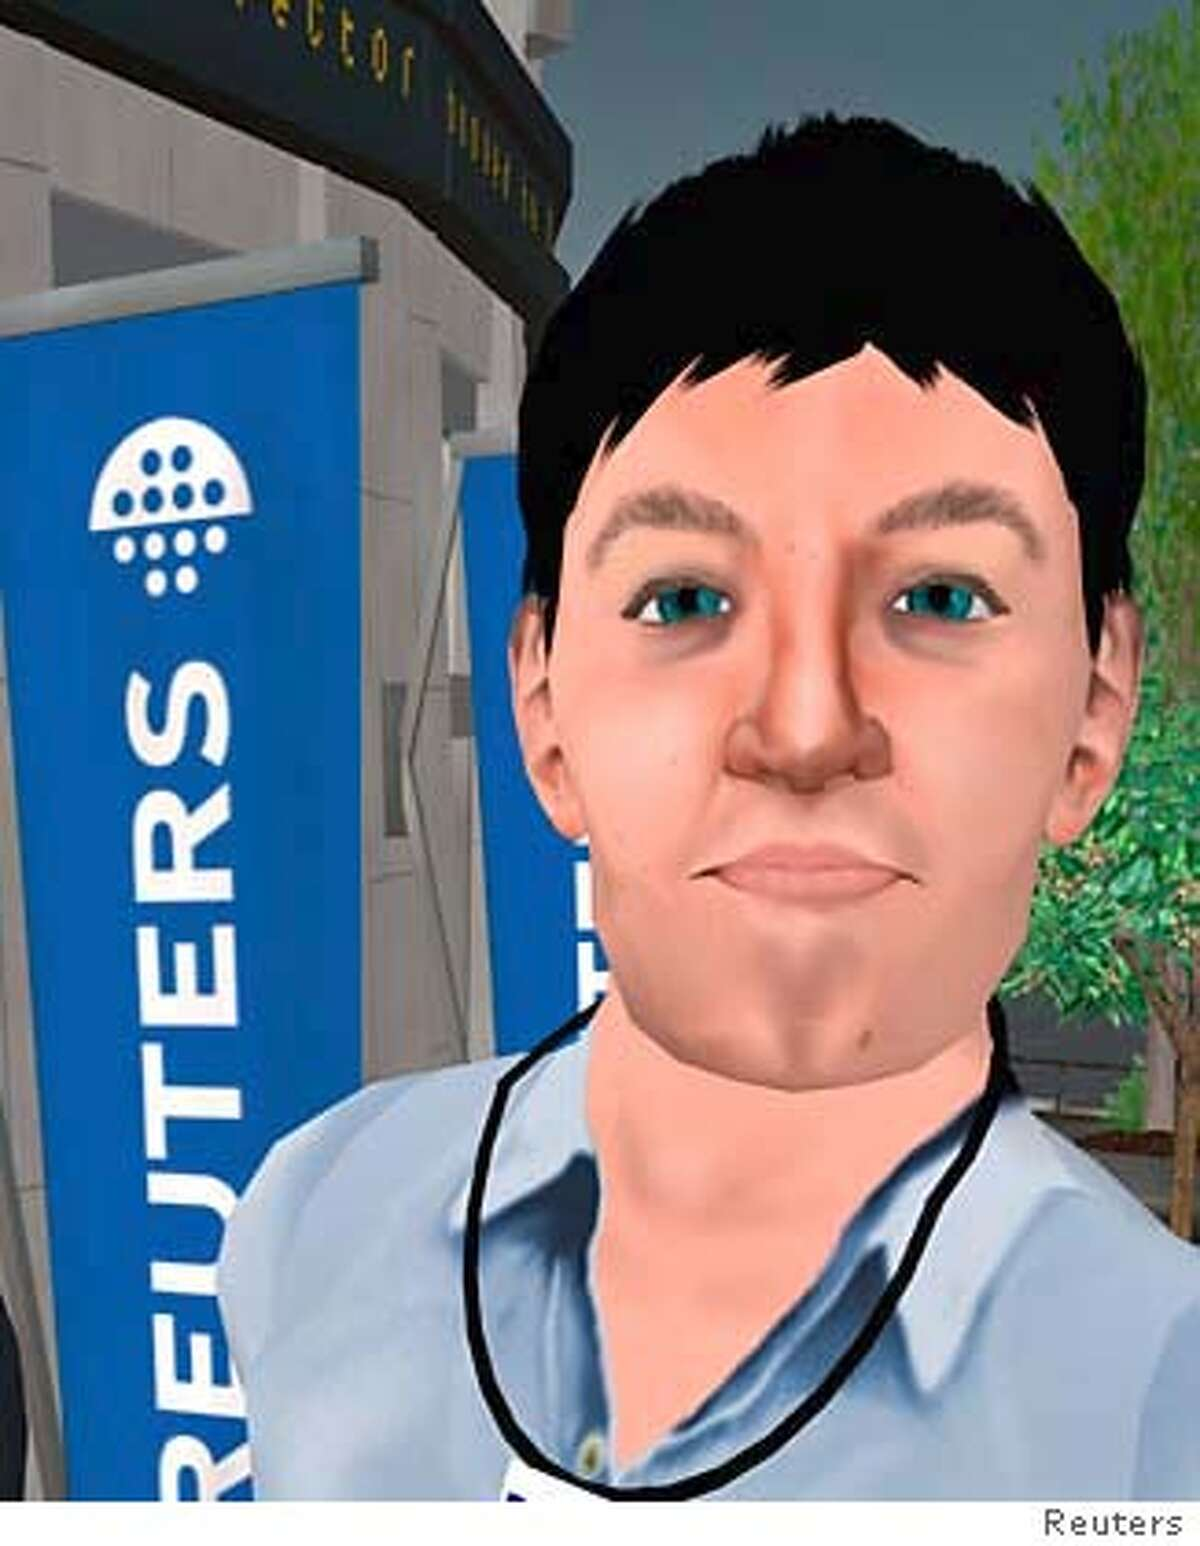 REUTERS17 � The online community Second Life has it's own monetary system, tattoo parlors and wedding planners � and now the virtual world has a full-time beat reporter from the Reuters international wire service. Adam Pasick has adopted the persona